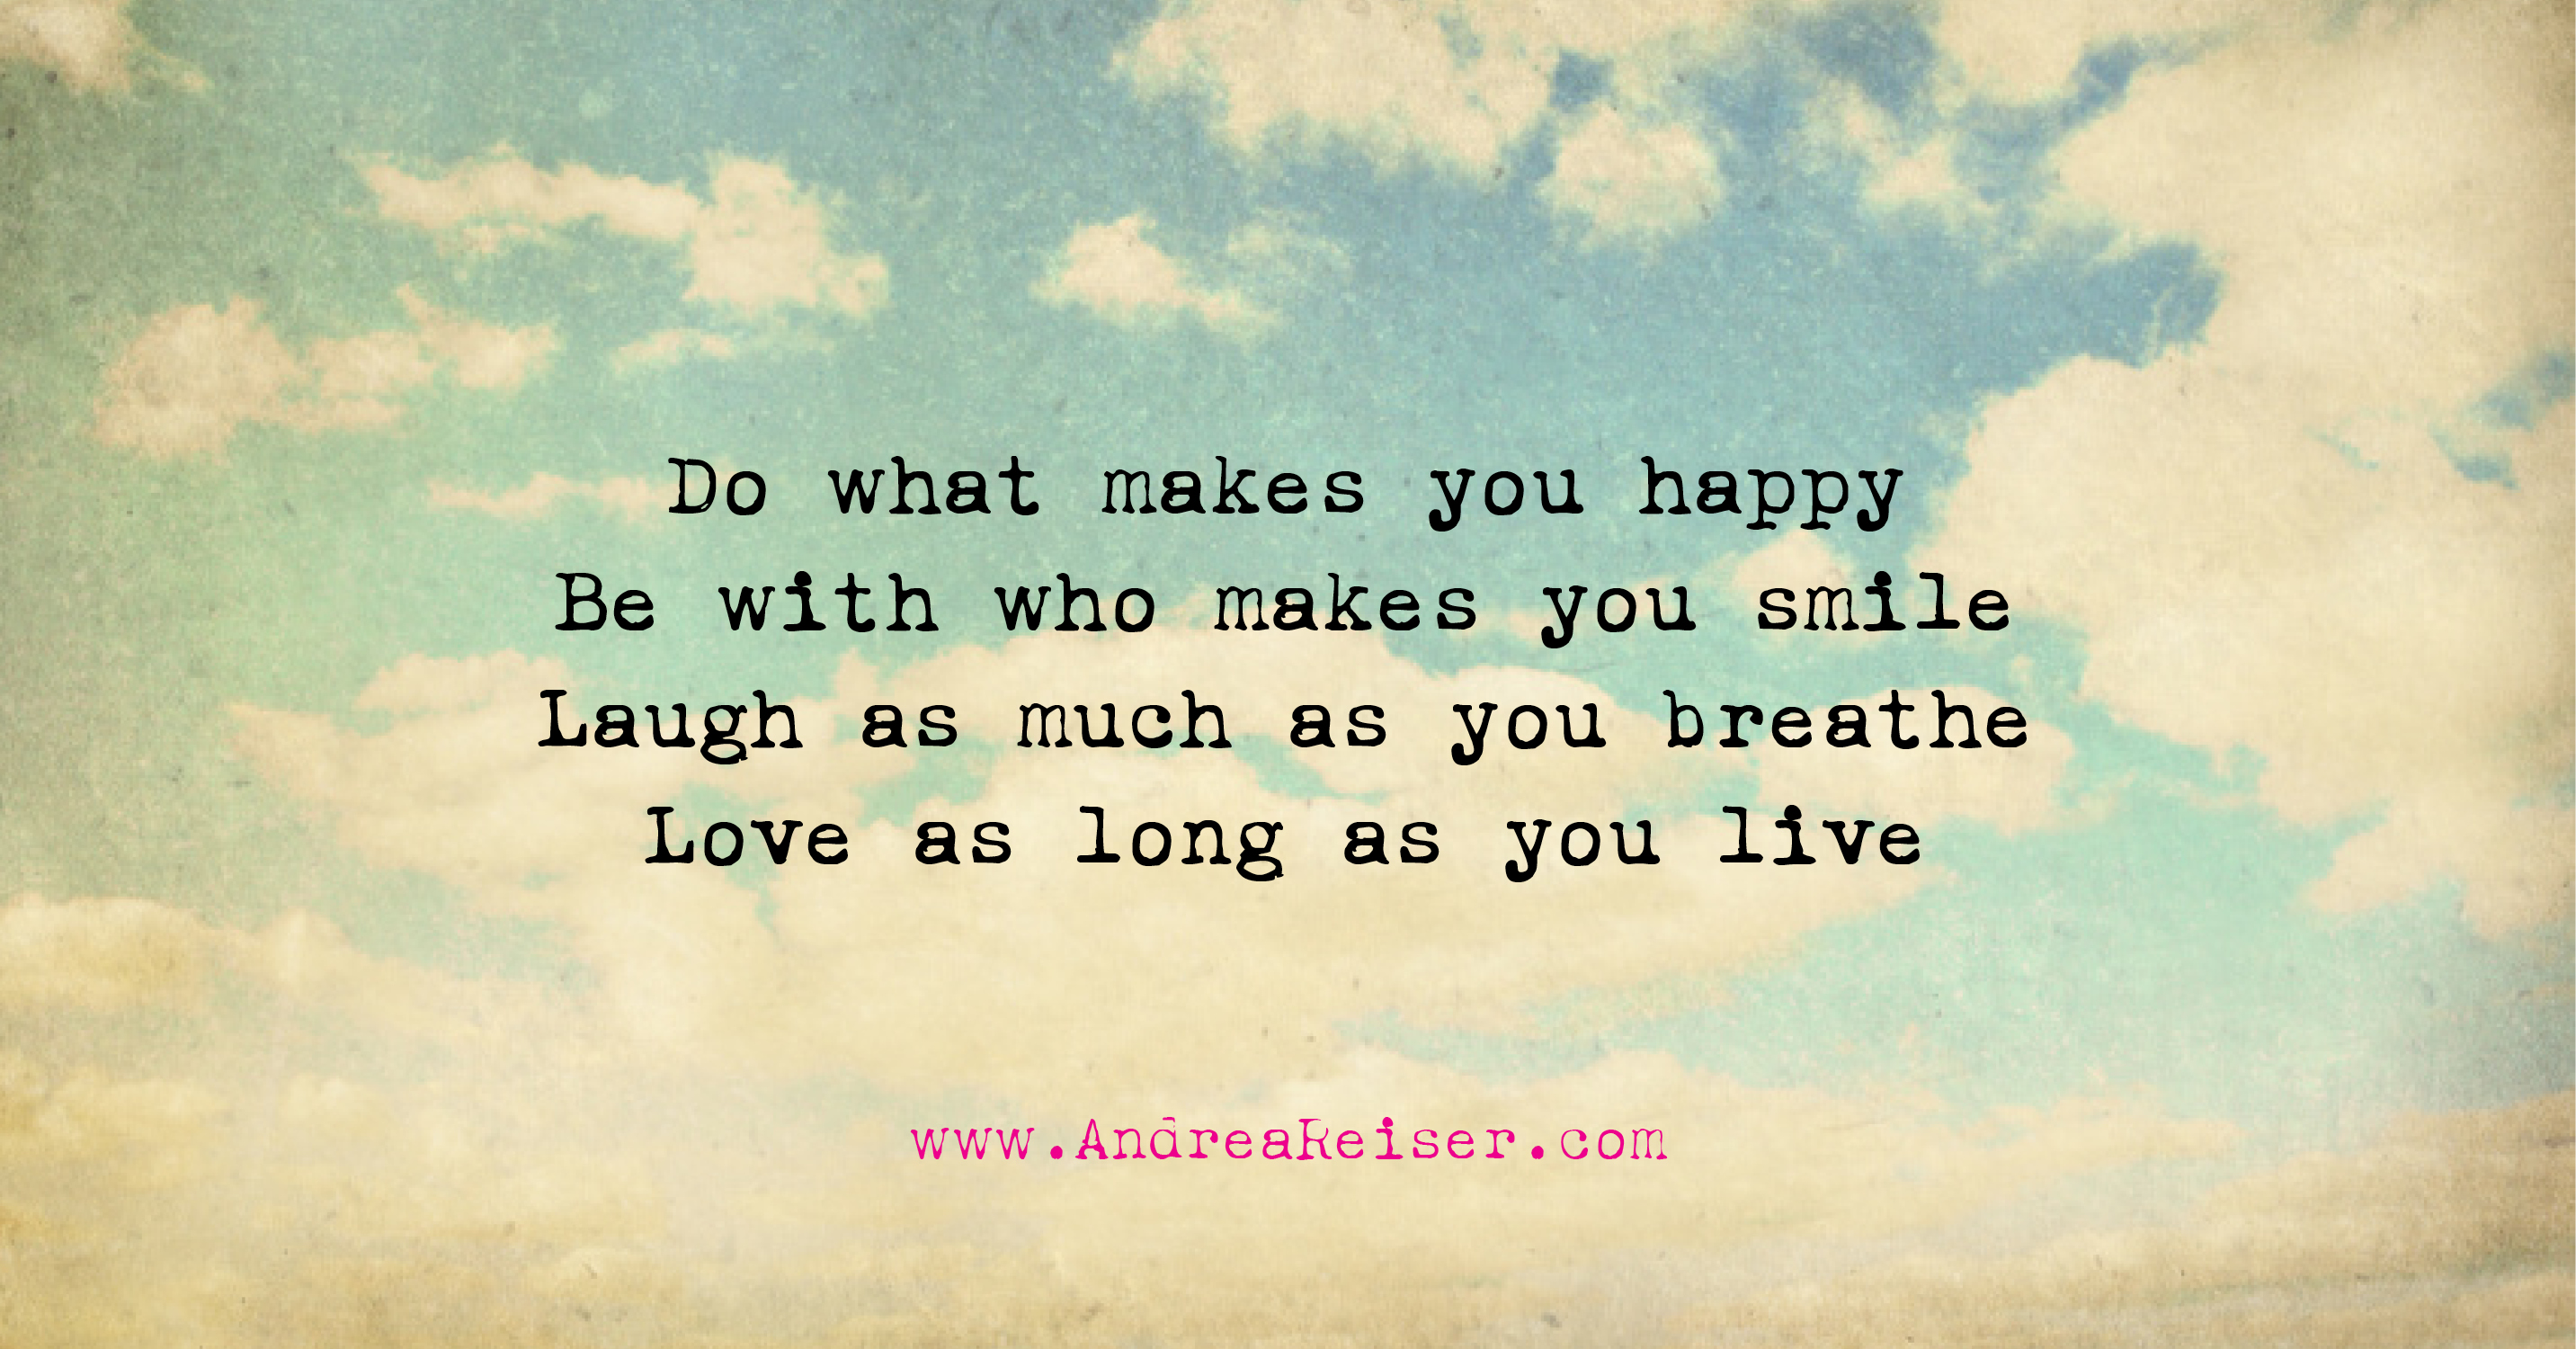 makes you happy 5 questions to discover who you are and what will make you happy.